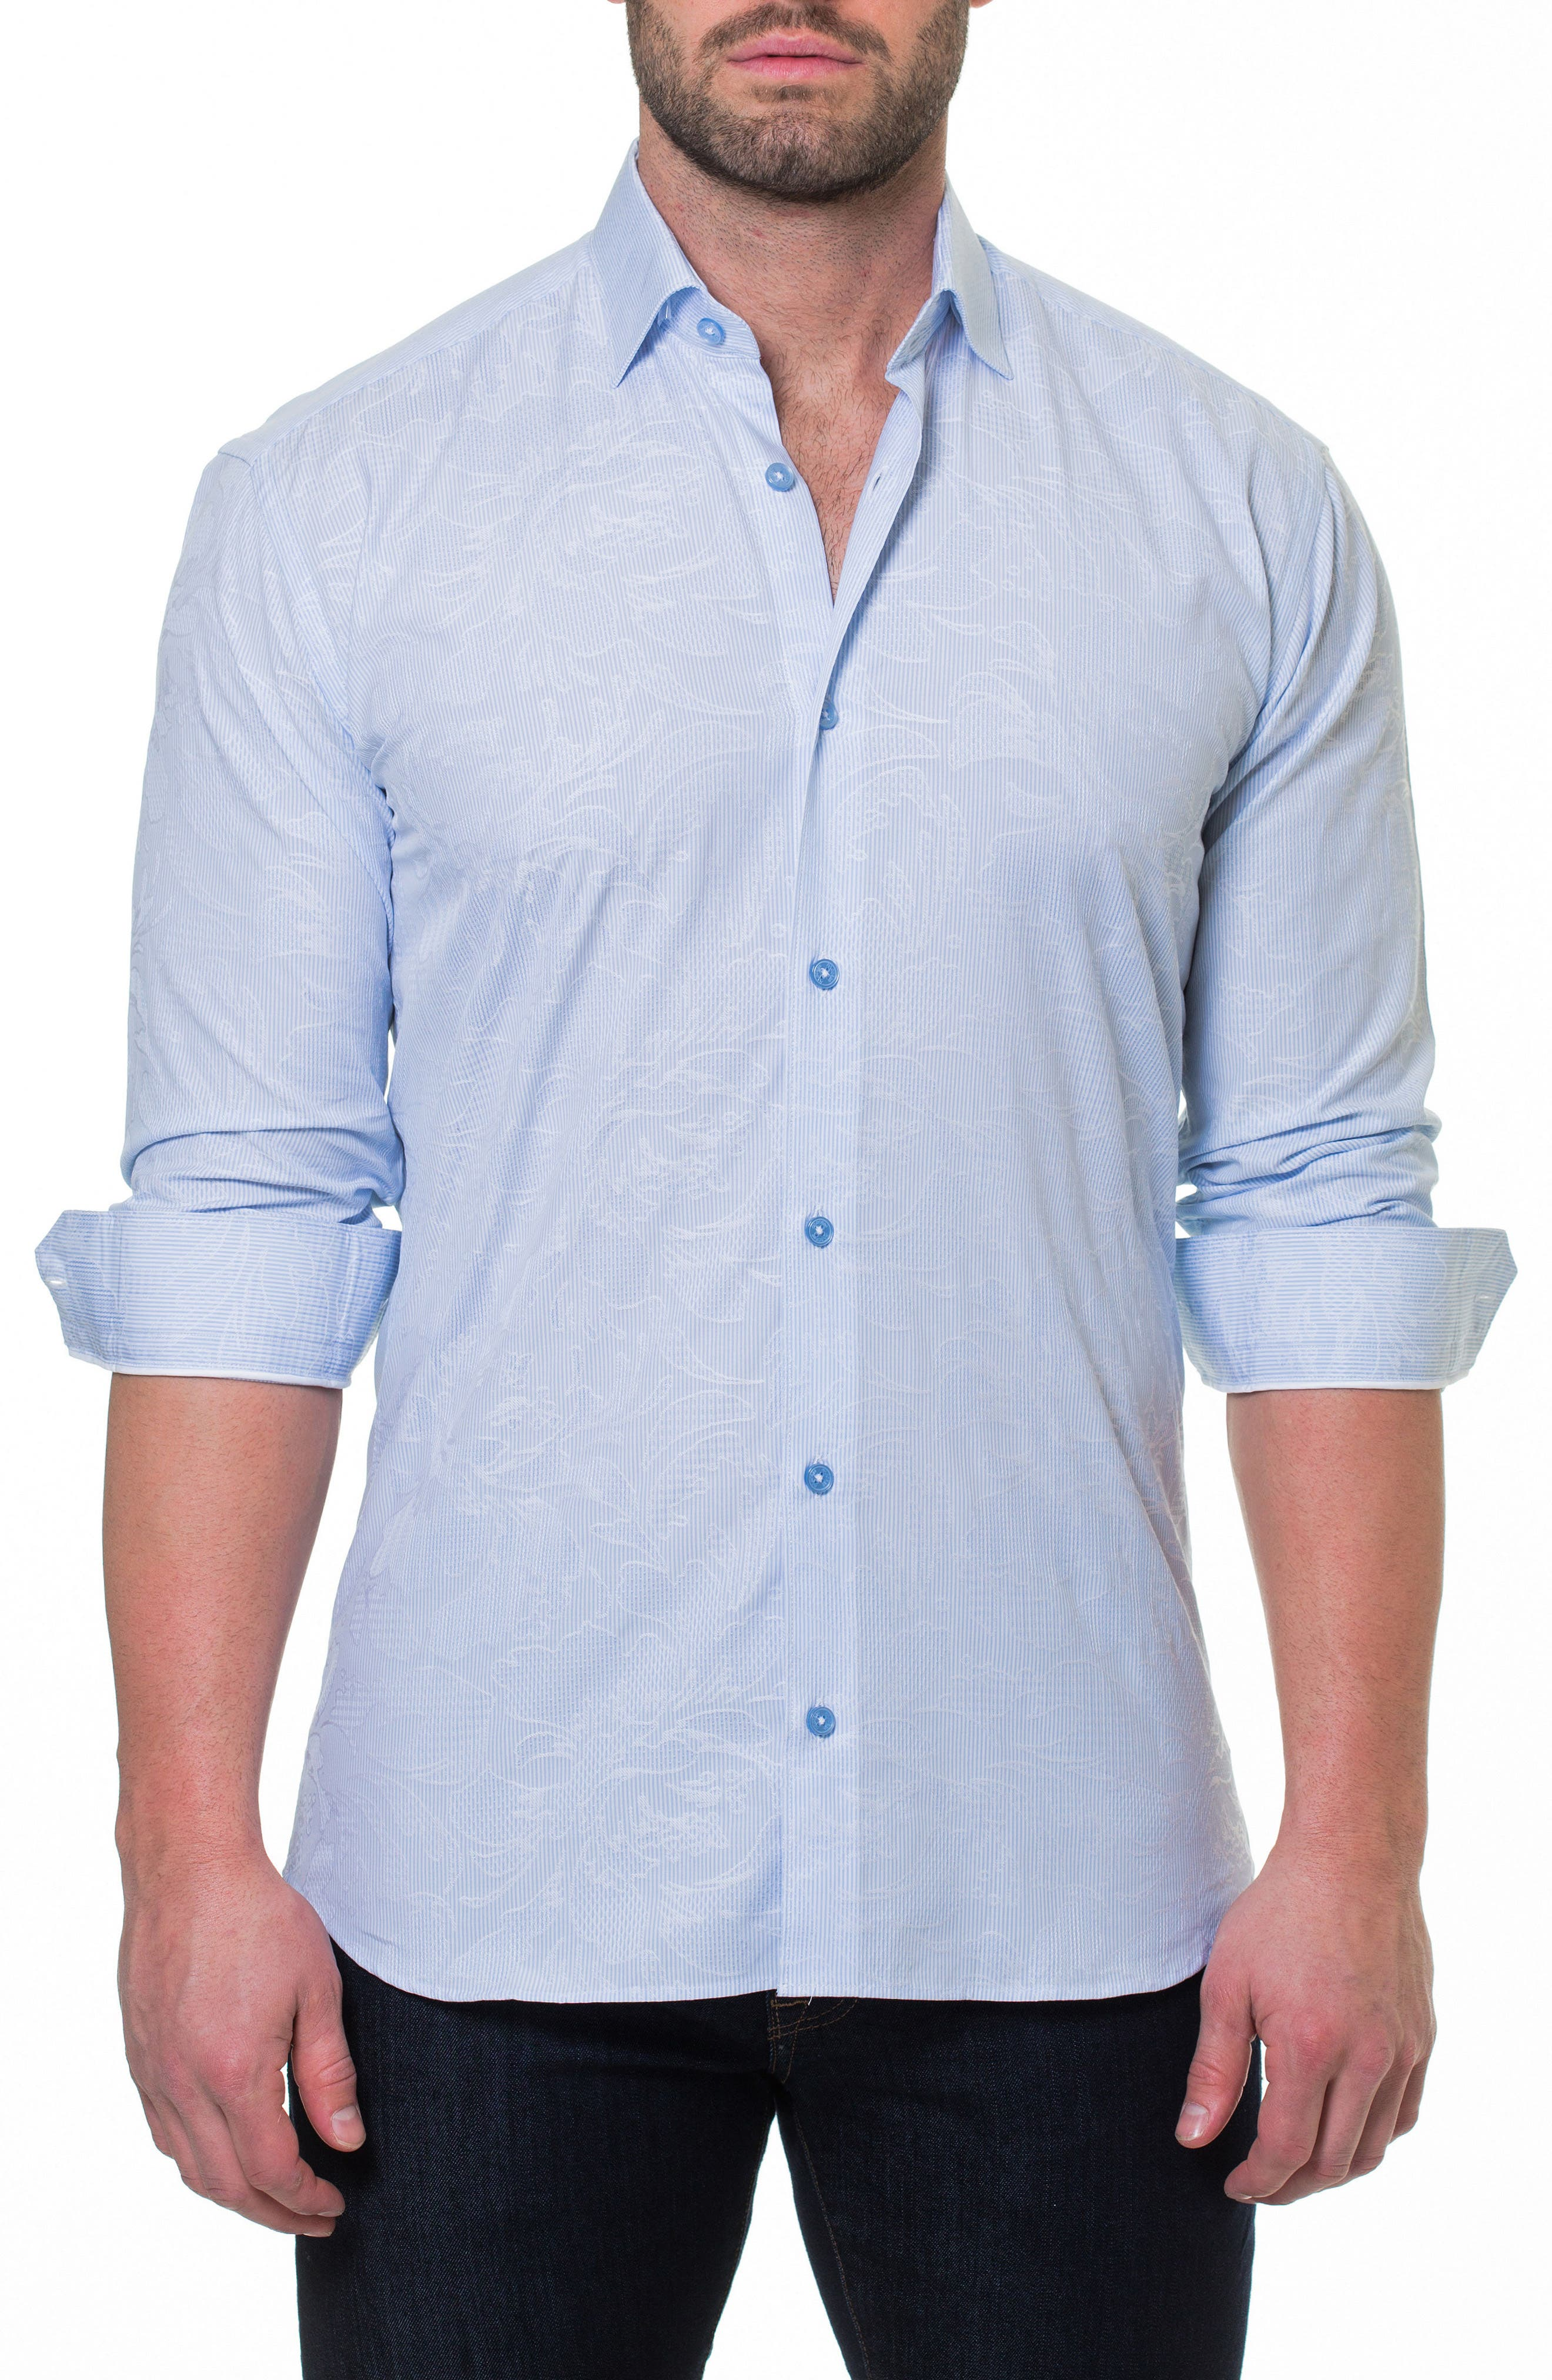 Luxor Flow Sport Shirt,                         Main,                         color, 420